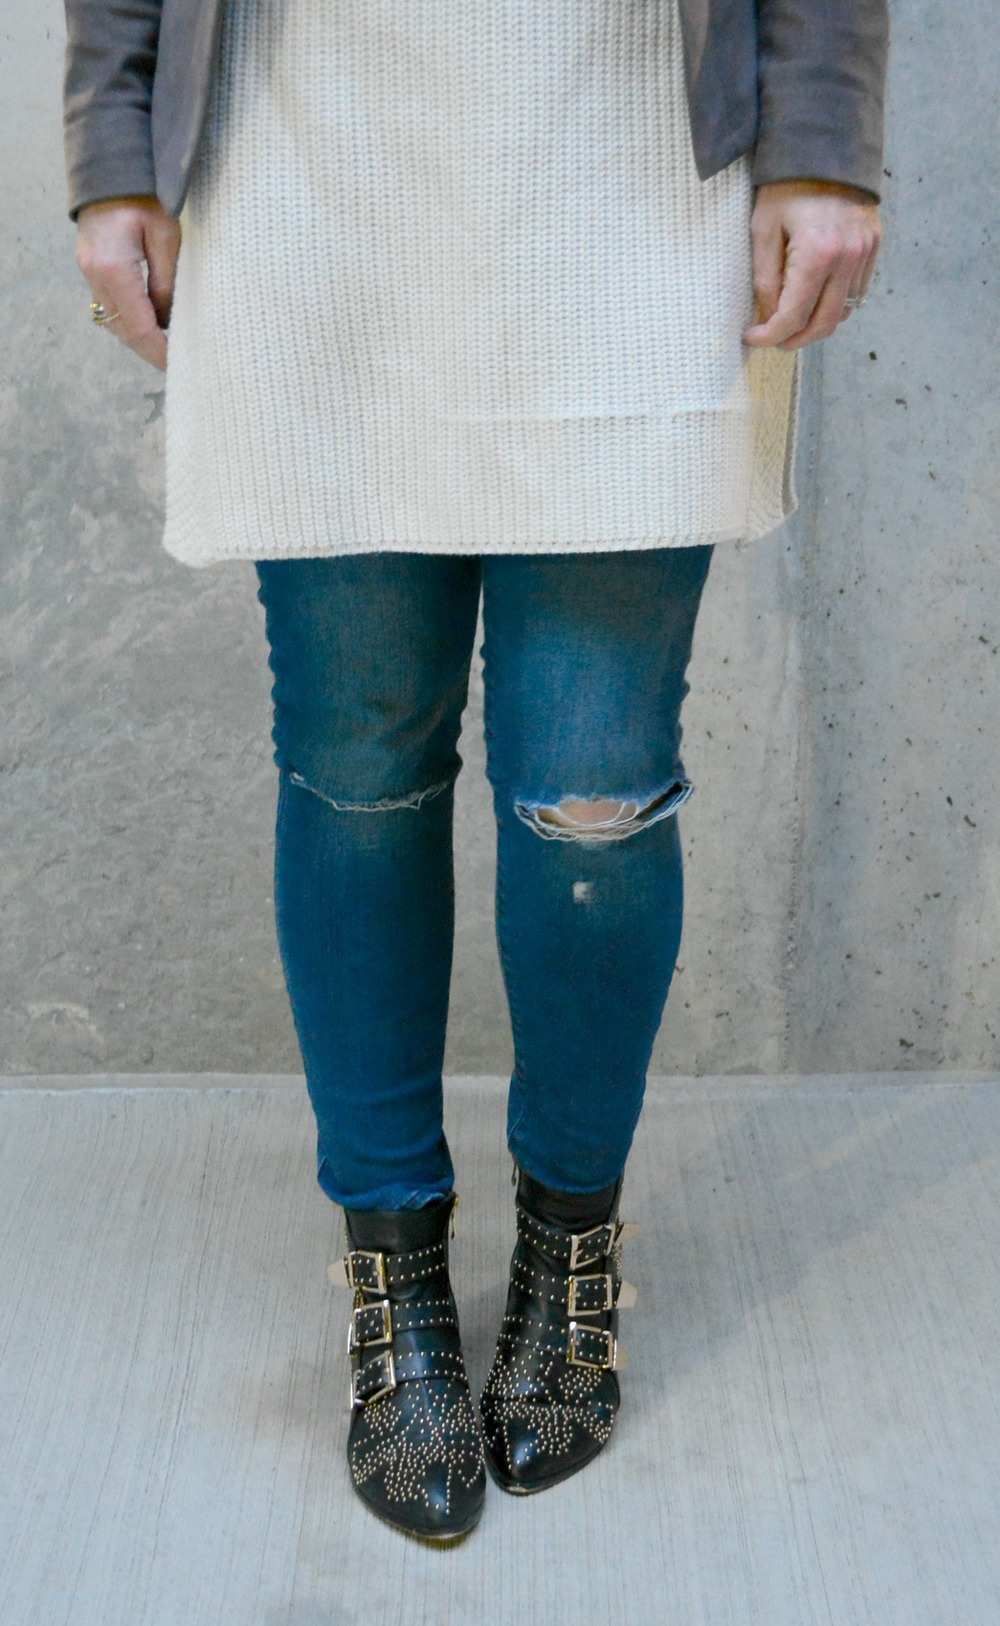 Distressed jeans with Chloe-ish booties